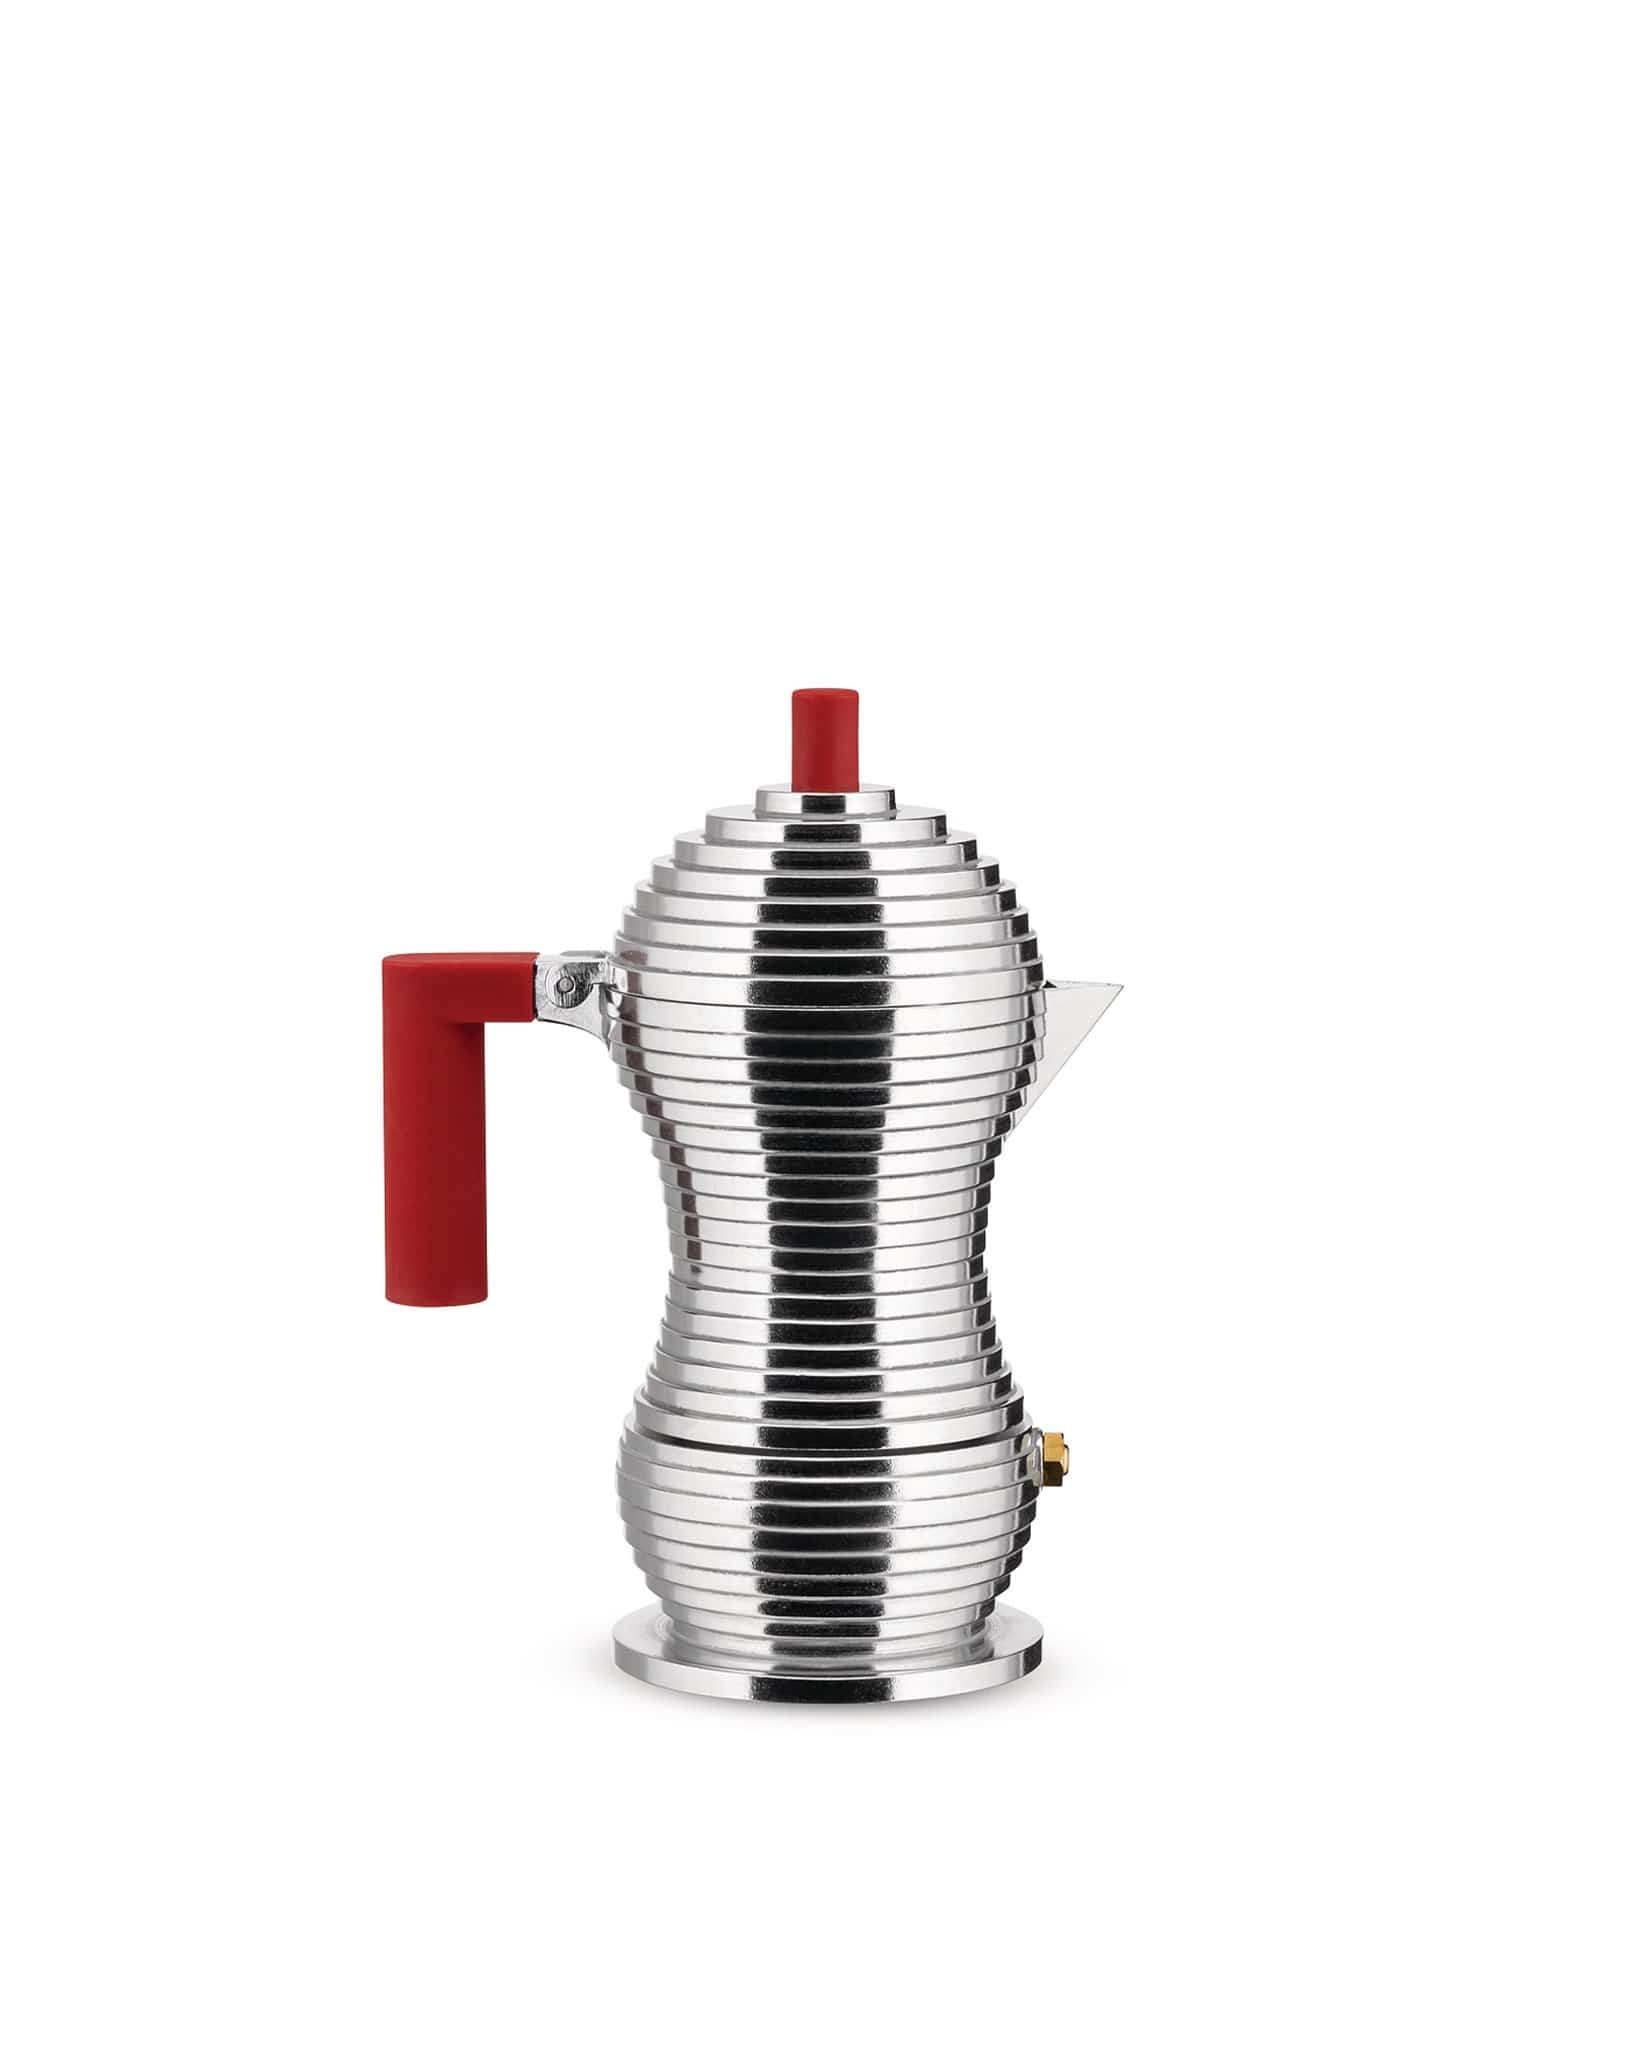 Alessi Alessi Pulcina Espresso Coffee Maker - Small - Silver & Red MDL02/3RFM